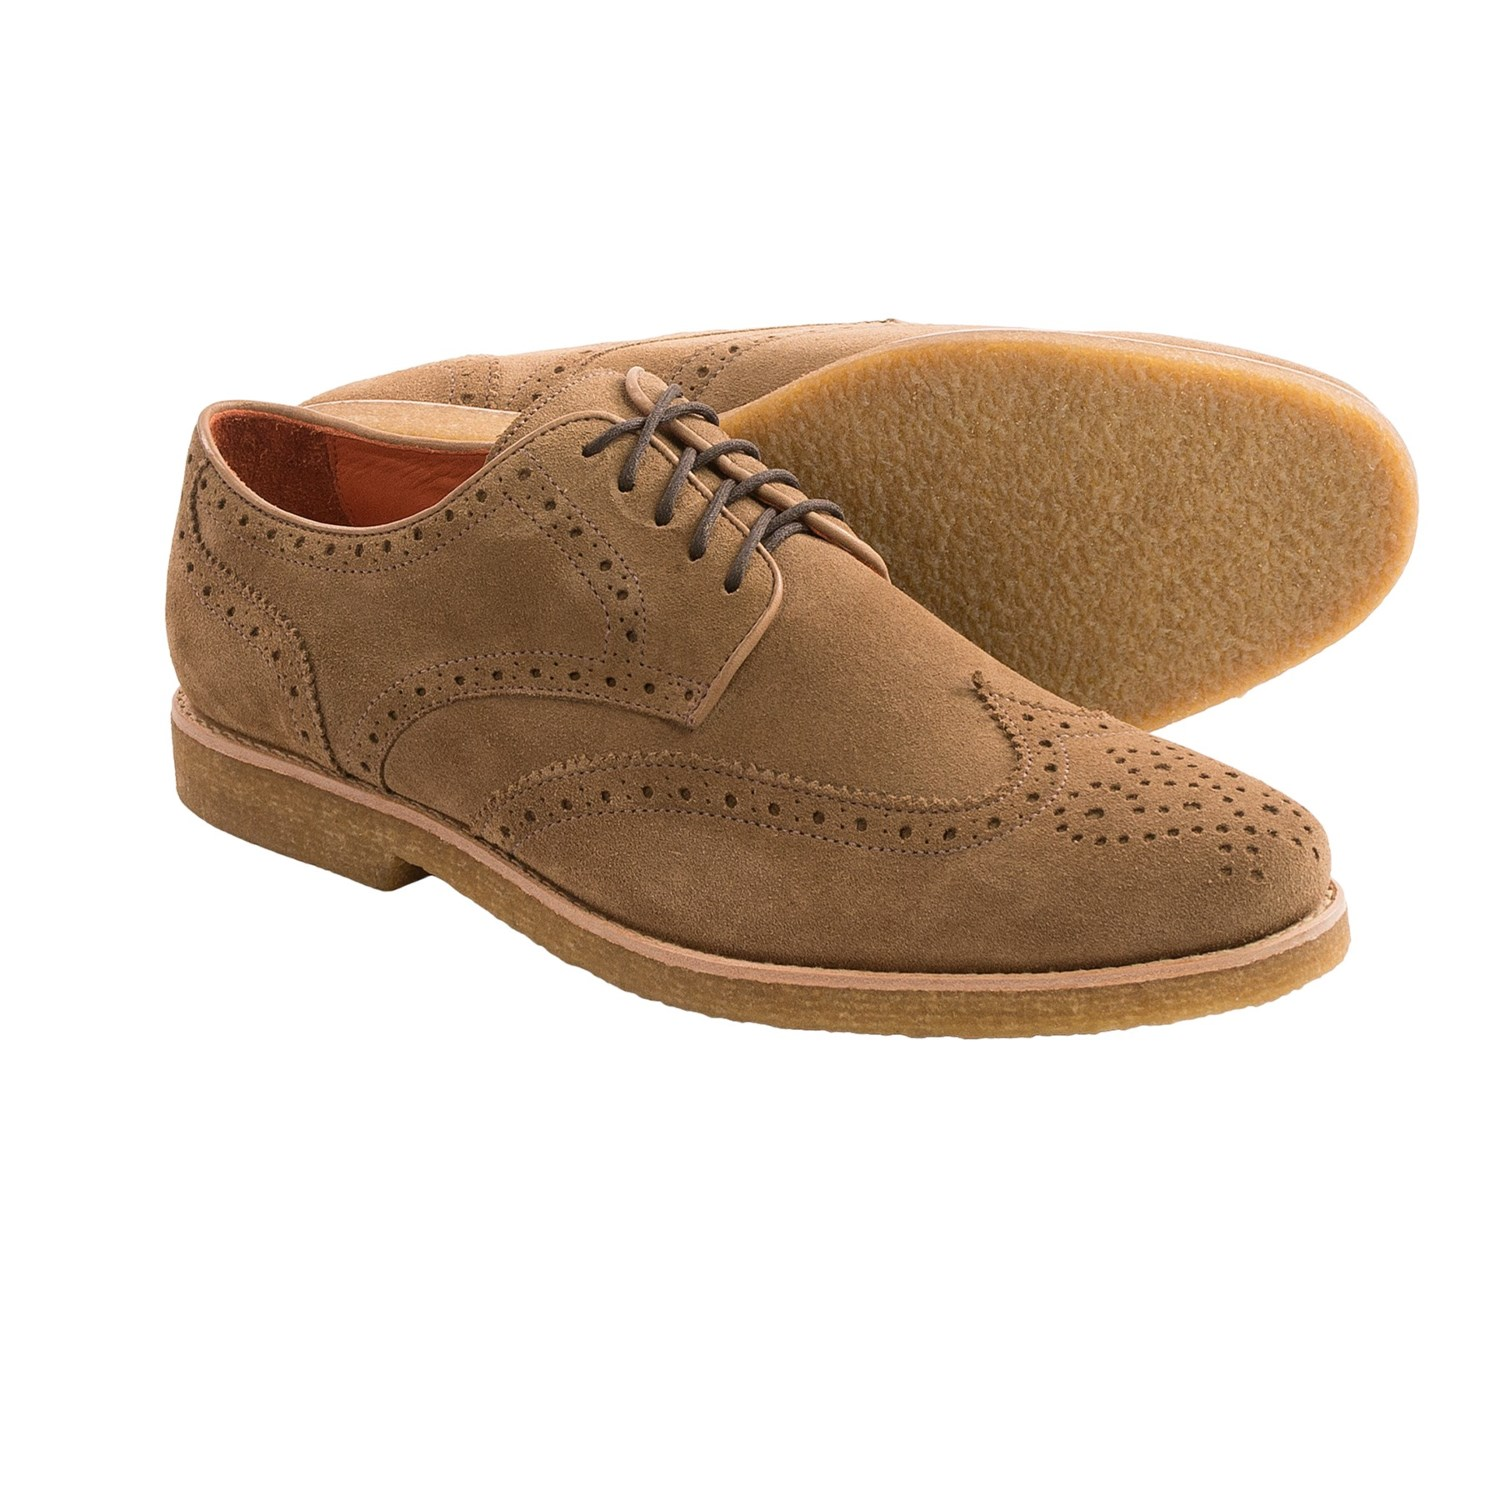 Shop men's oxfords and monks at archivesnapug.cf and see our entire collection of classic dress shoes and sport oxfords for men. Cole Haan. FREE GROUND SHIPPING | $10 Flat Rate 2-DAY. Men's ZERØGRAND Wingtip Oxford with Stitchlite™ $